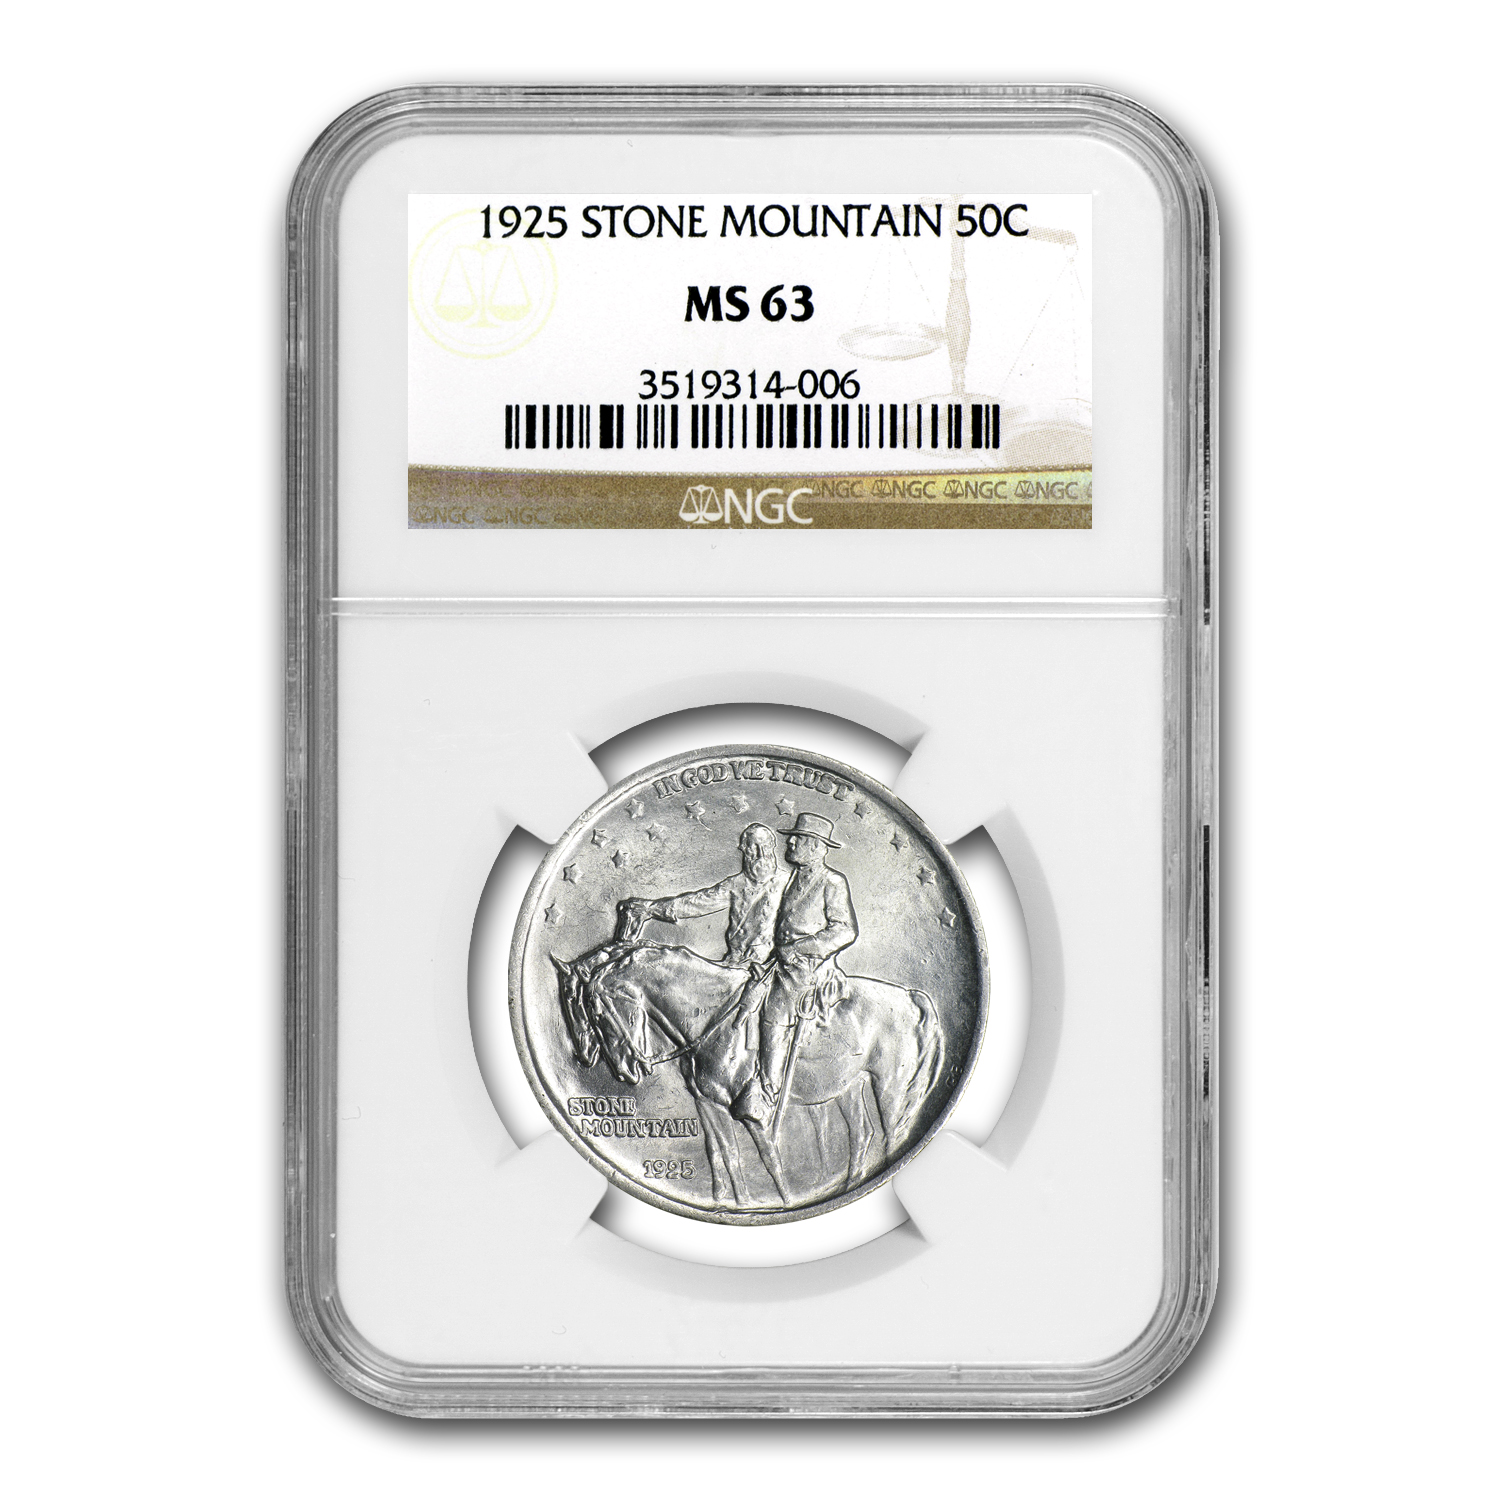 1925 Stone Mountain Memorial Half Dollar MS-63 NGC